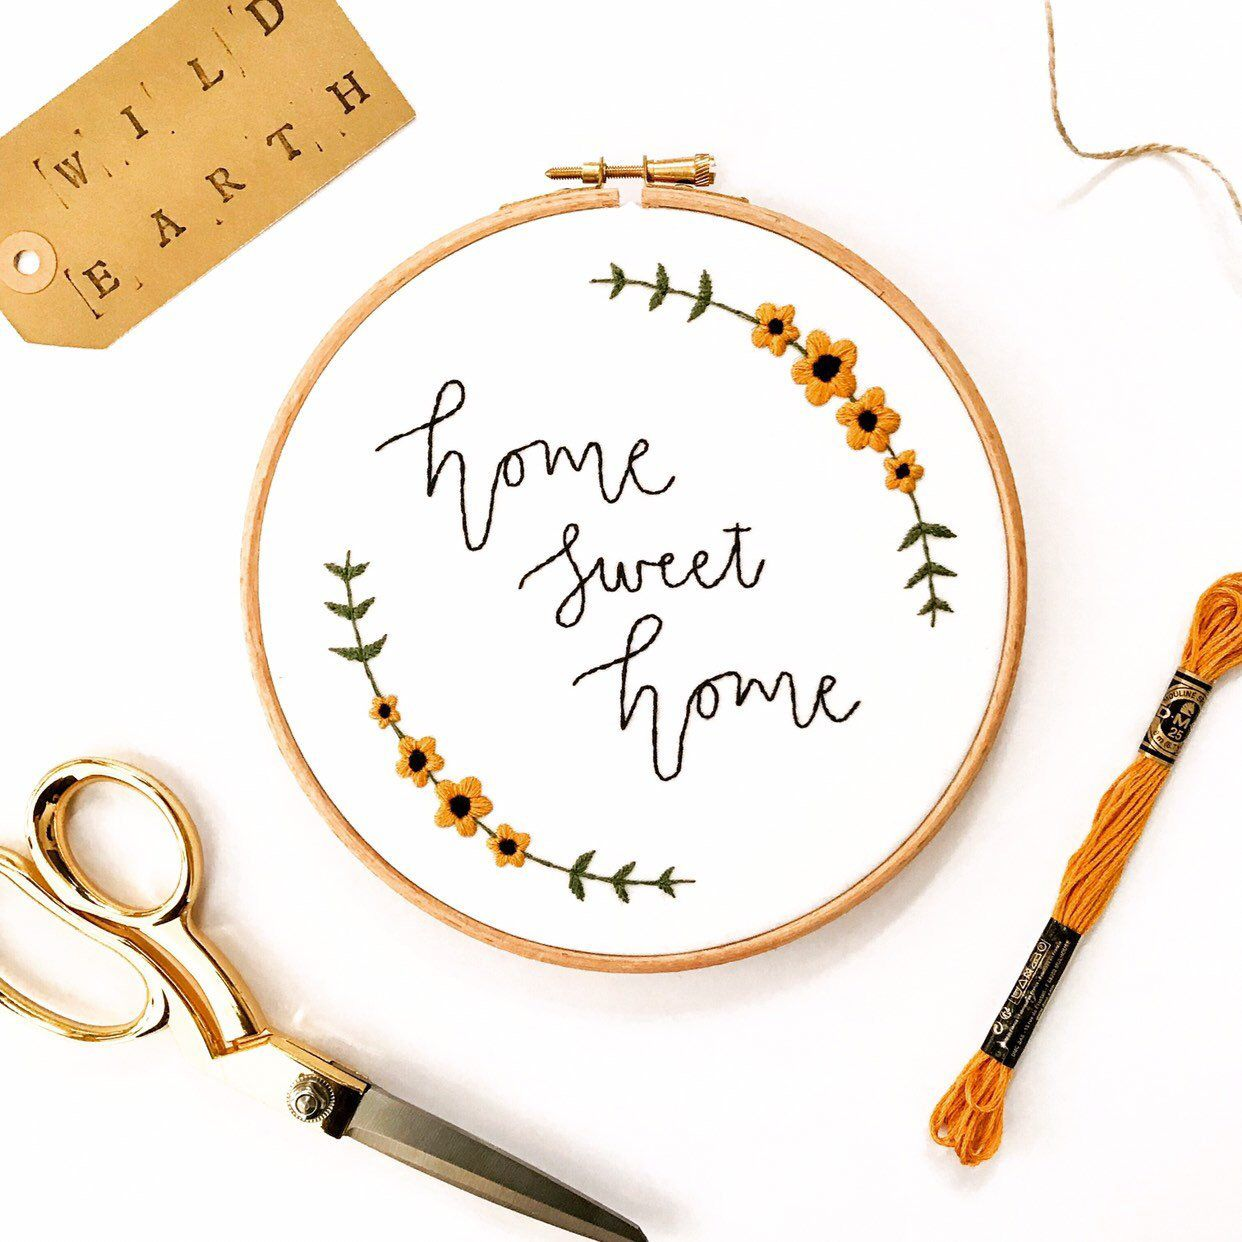 Home Sweet Home Hand Embroidery Sign, Modern Embroidery, Floral Hand Embroidery, Housewarming Gift, Embroidery Home Decor